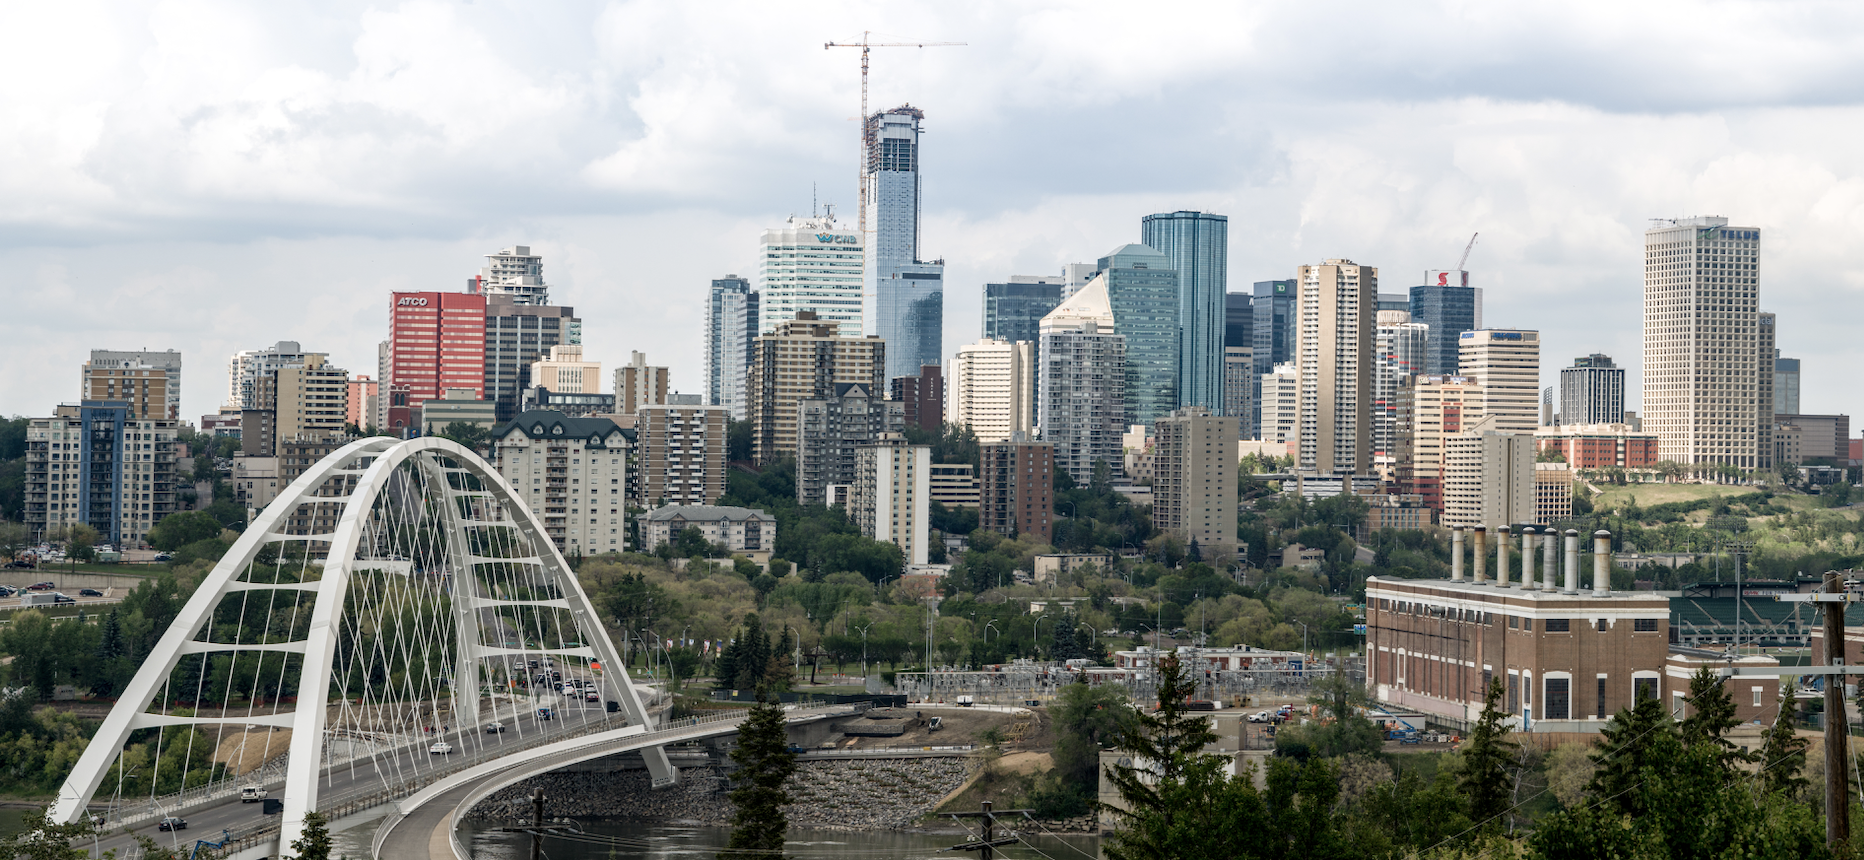 As Edmonton continues to grow, city officials are considering how Edmonton can harness new technology to better welcome and integrate newcomers  (Source: City of Edmonton)